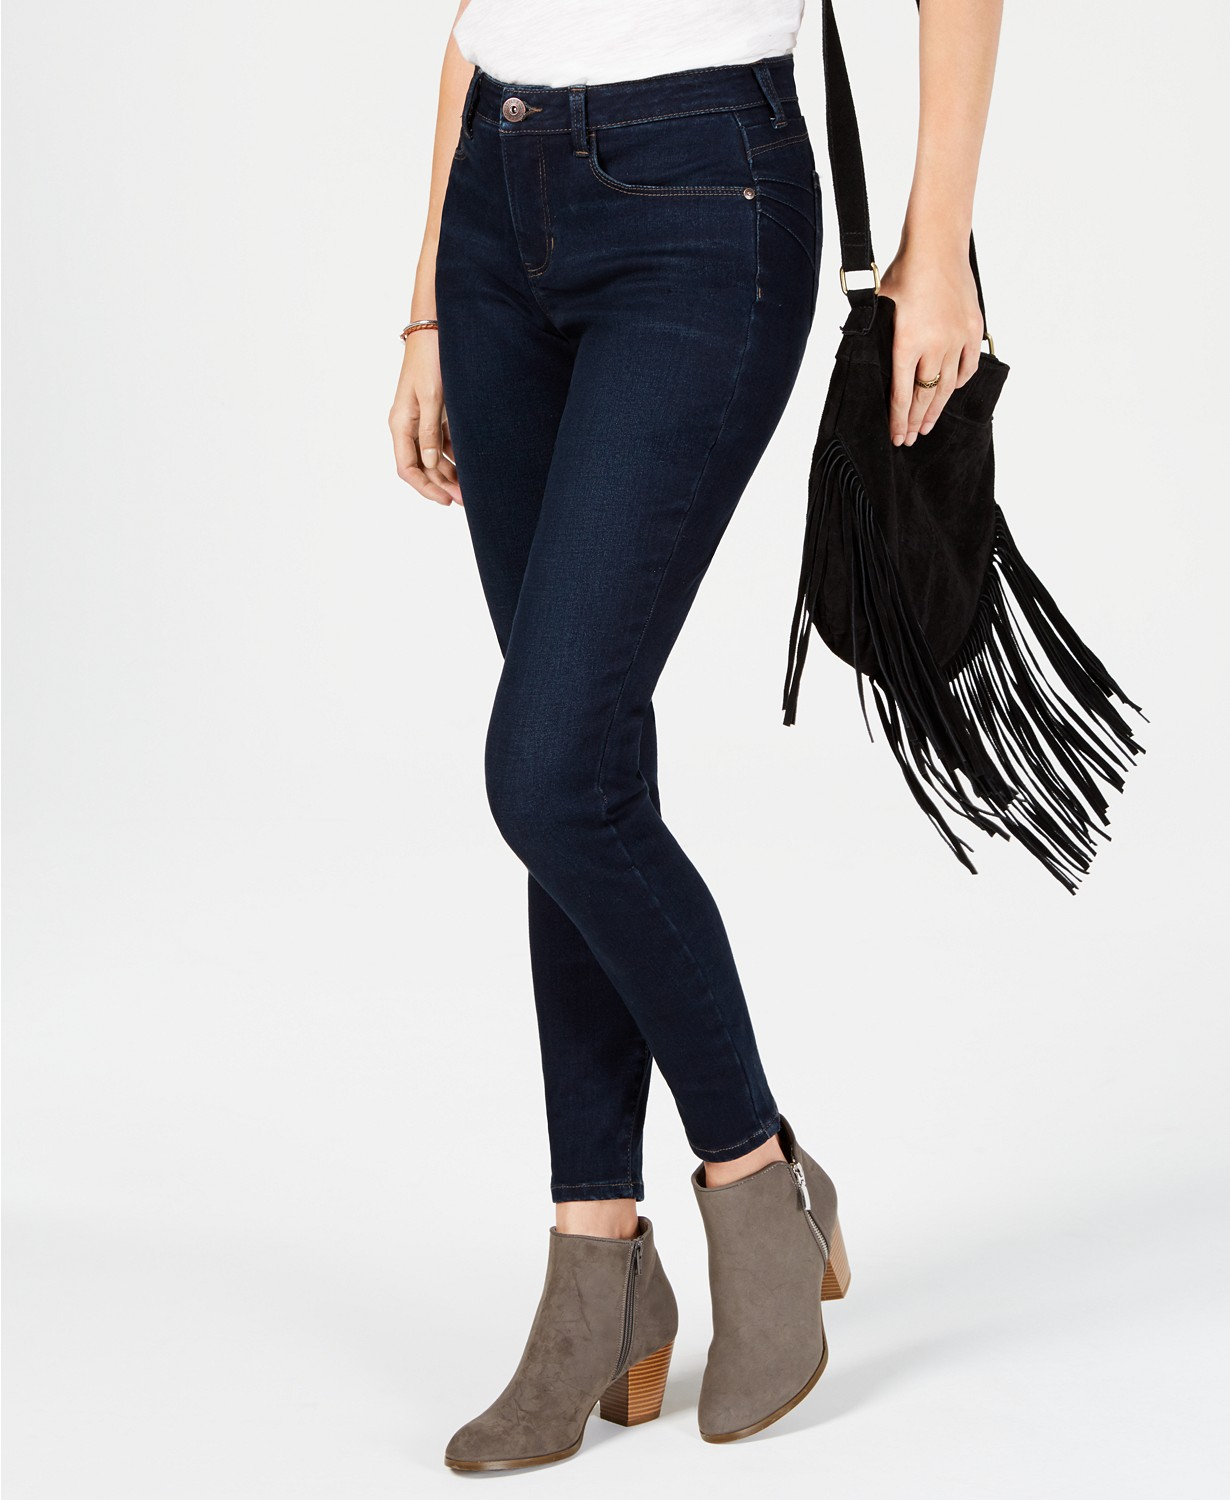 style and co power sculpt curvy-fit skinny jeans in deep dark blue denim